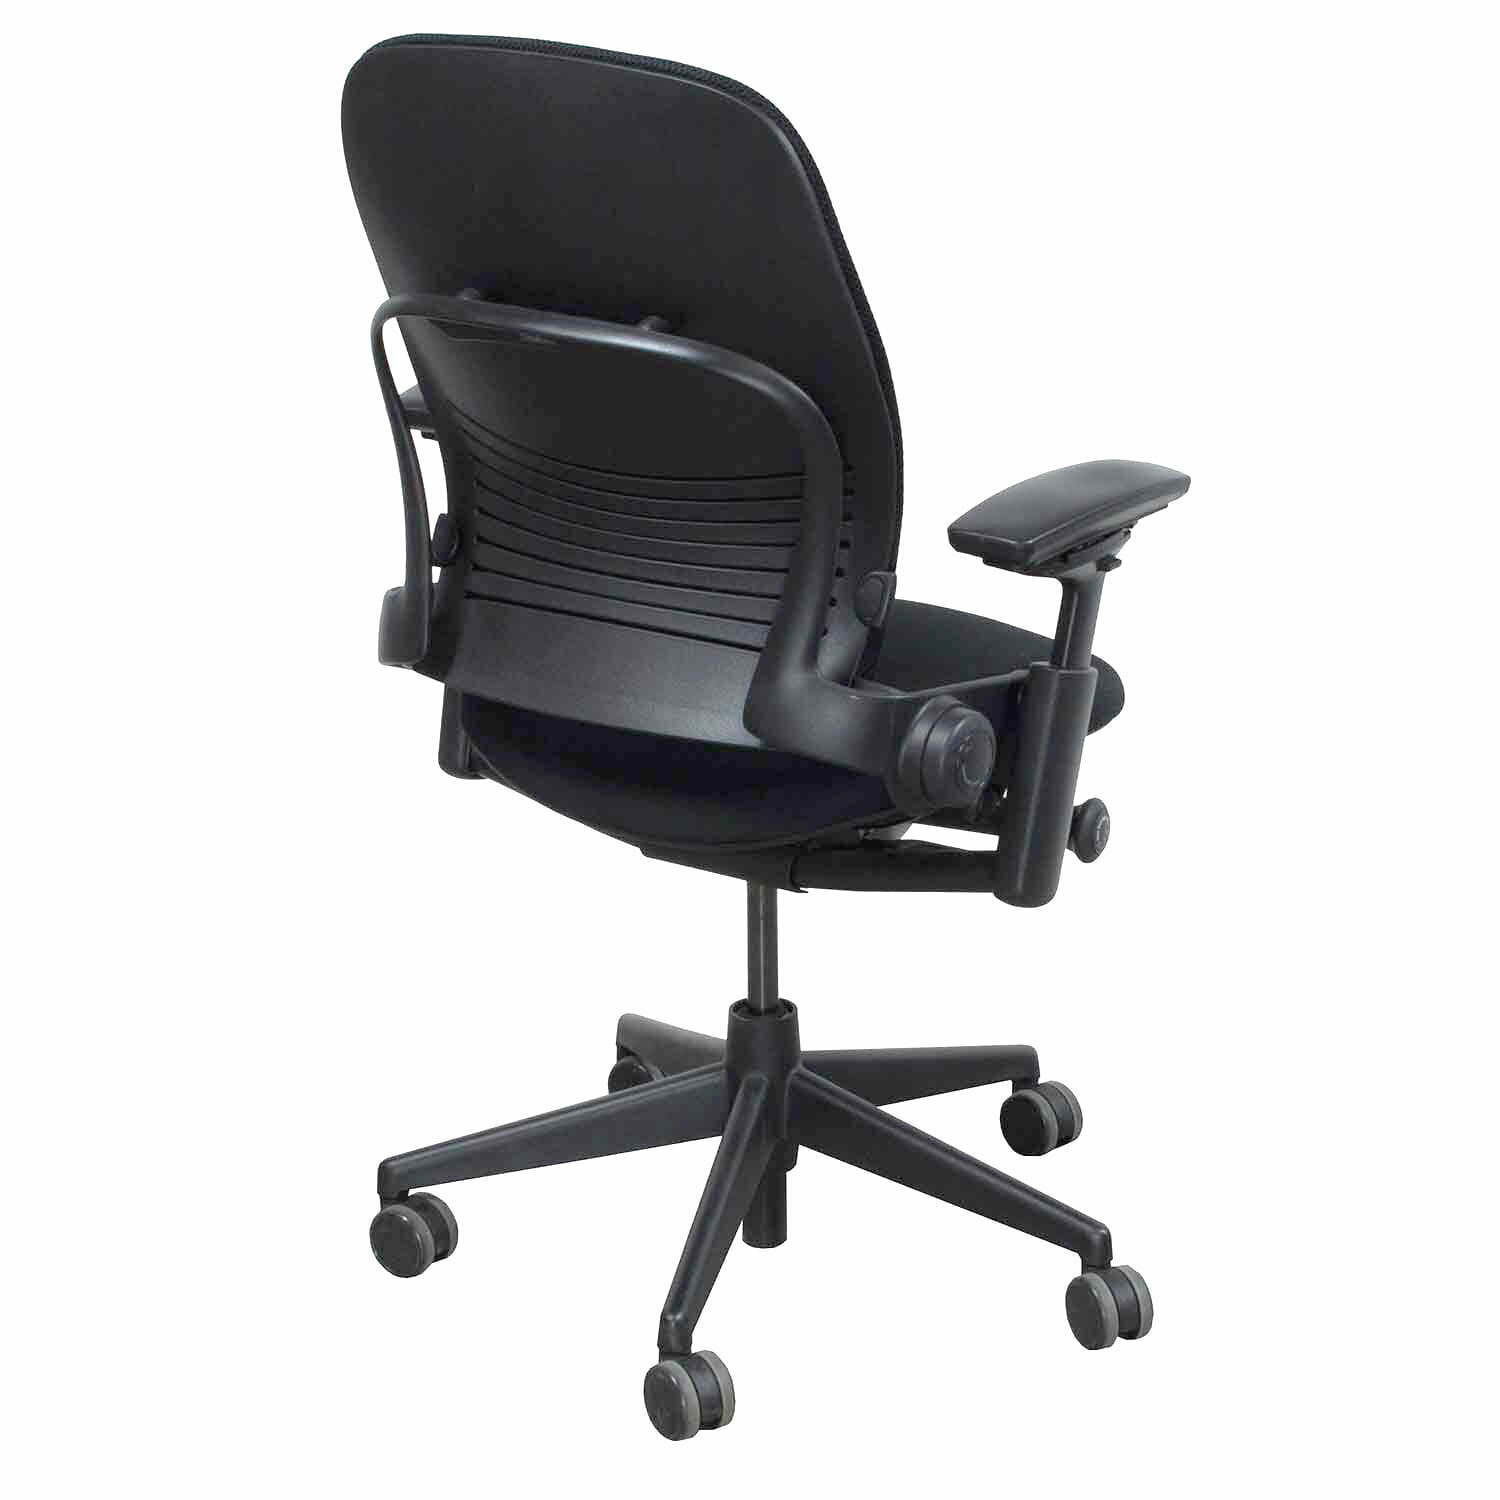 Steelcase Desk Chair Steelcase Leap 2 Office Chair Unisource Office Furniture